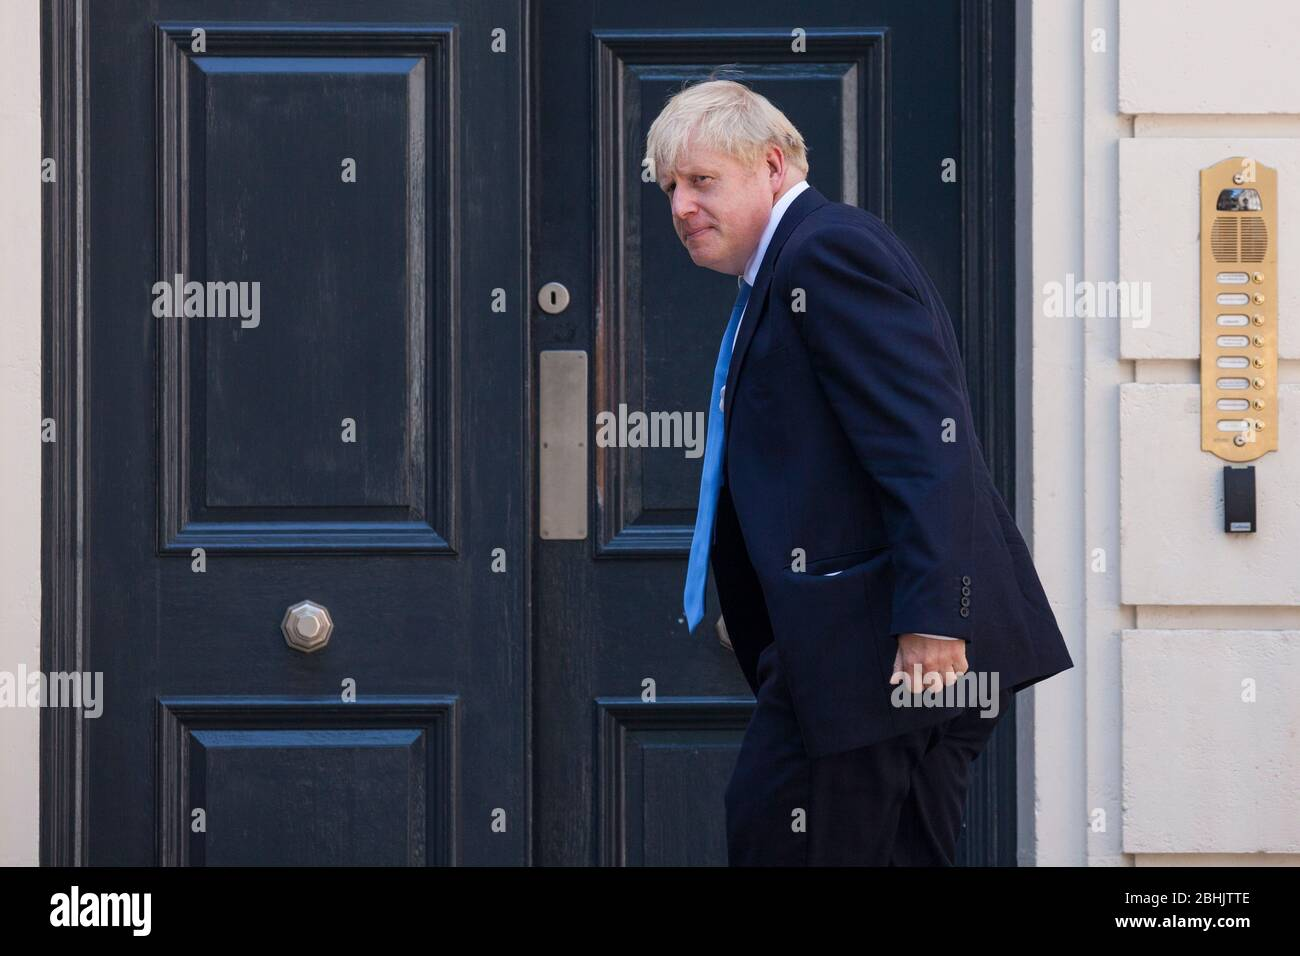 London, UK. 23 July, 2019.  Boris Johnson arrives at the headquarters of the Conservative Party following the announcement that he had been elected as the party leader and would replace Theresa May as Prime Minister. Credit: Mark Kerrison/Alamy Live News Stock Photo